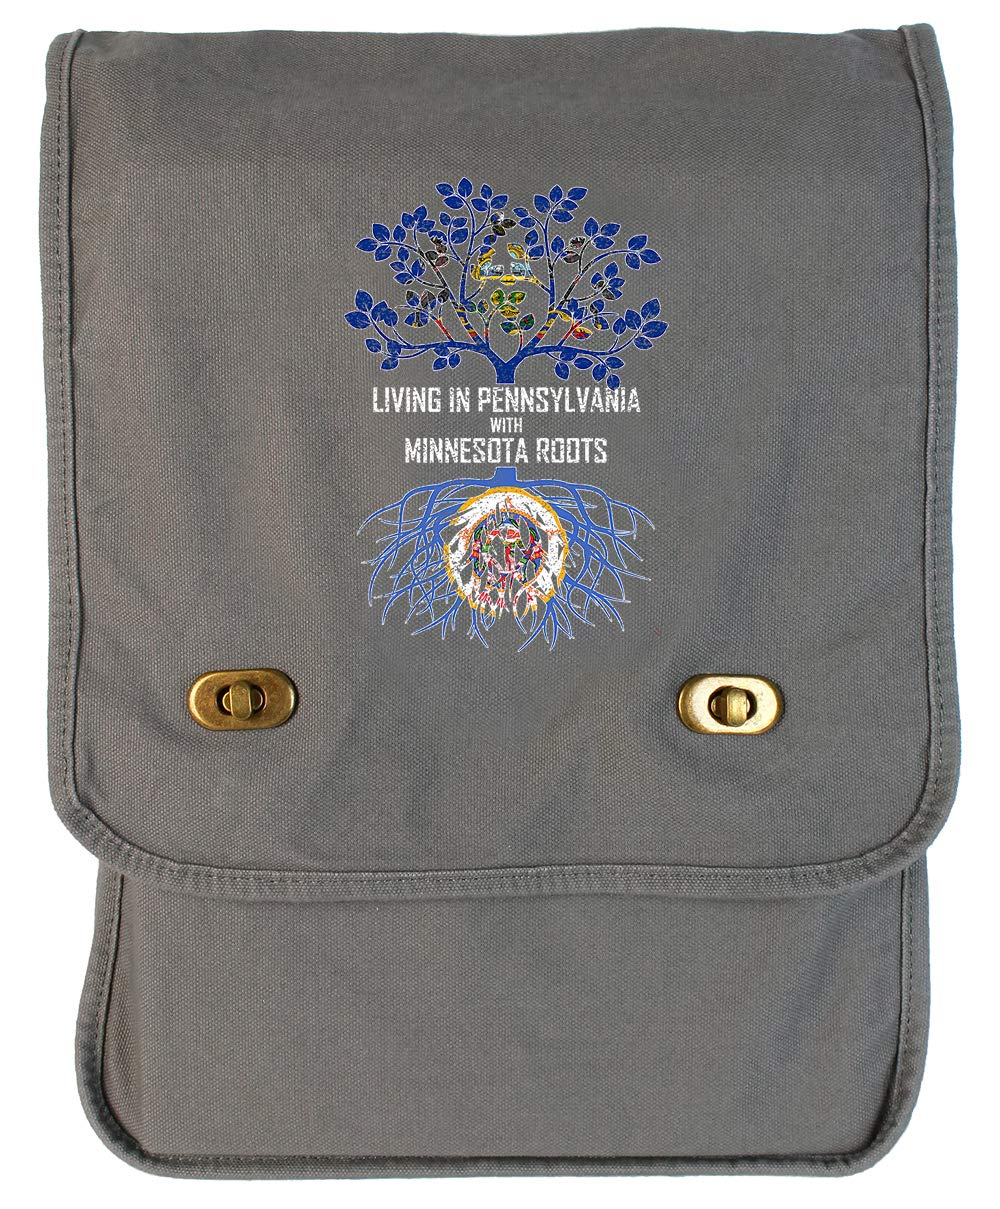 Tenacitee Living In Pennsylvania with Minnesota Roots Grey Brushed Canvas Messenger Bag